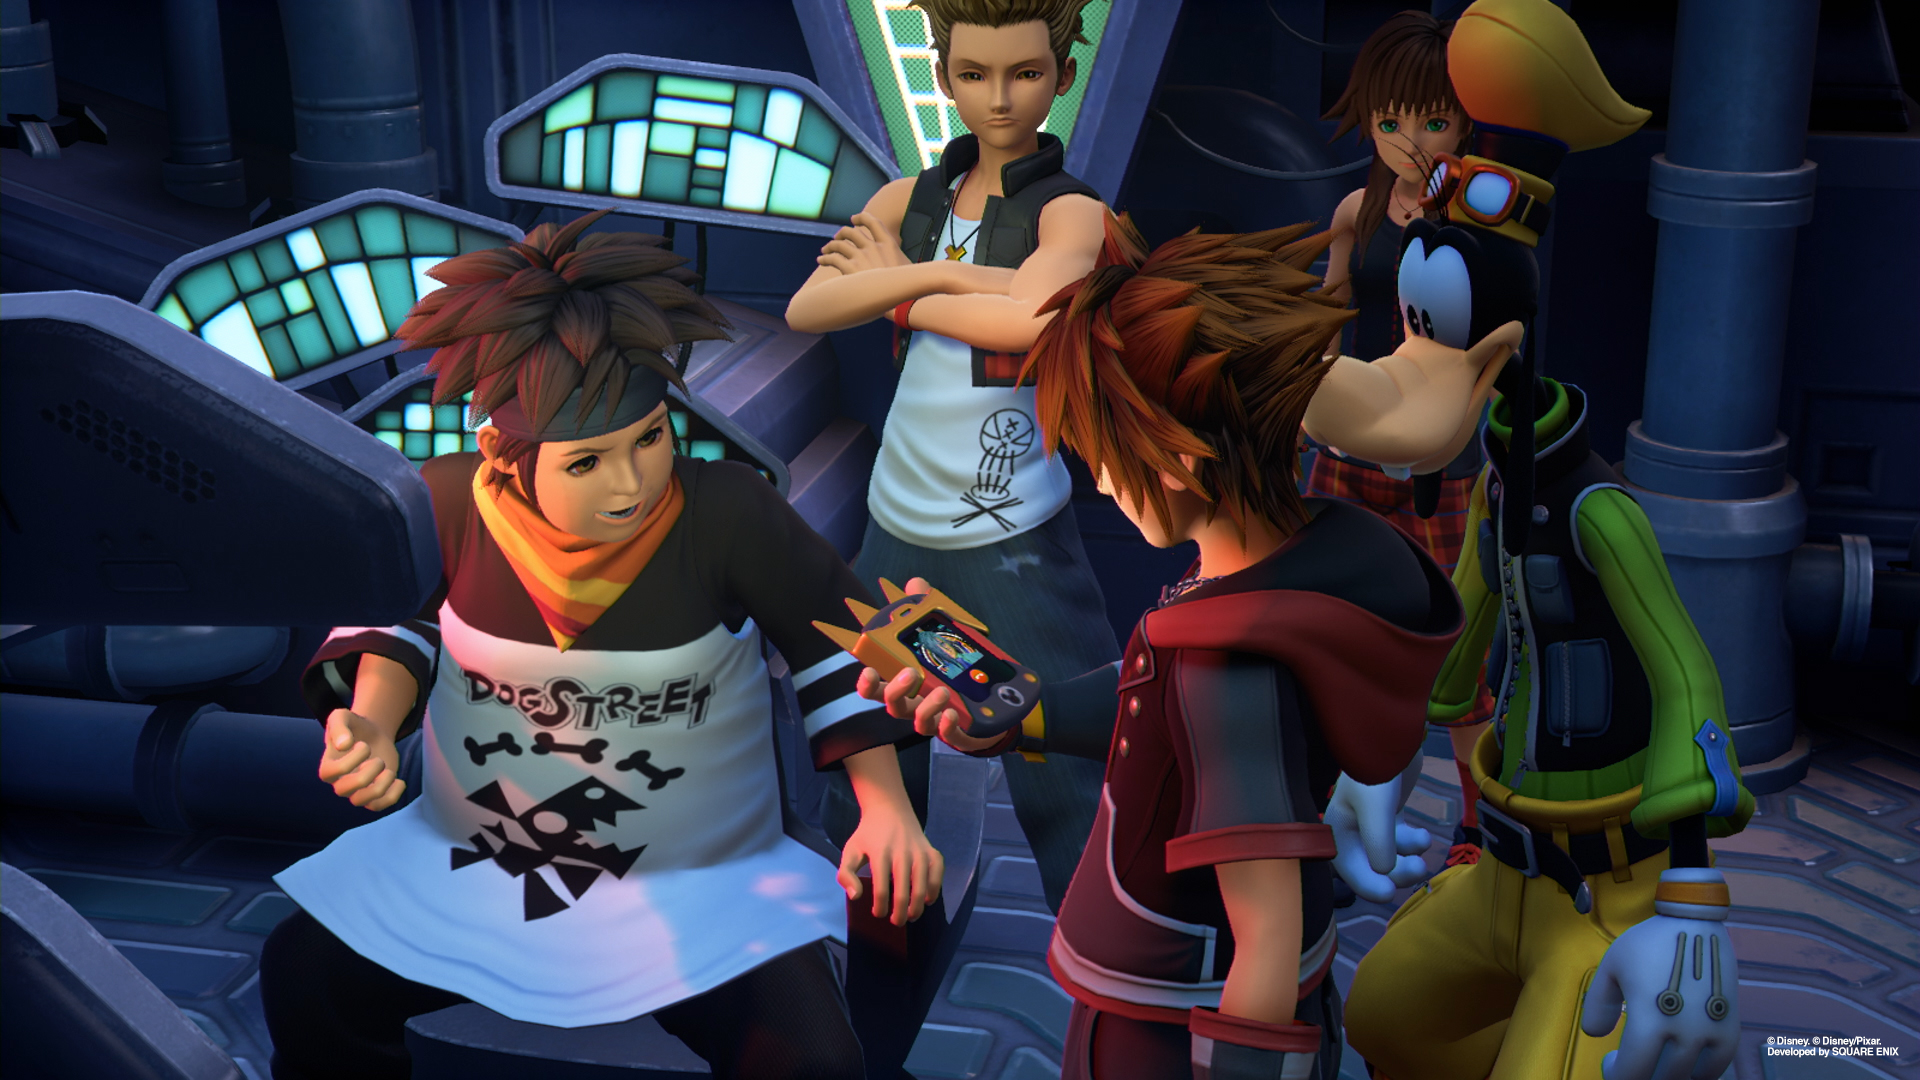 Kingdom Hearts Olette Square Enix Shares New...